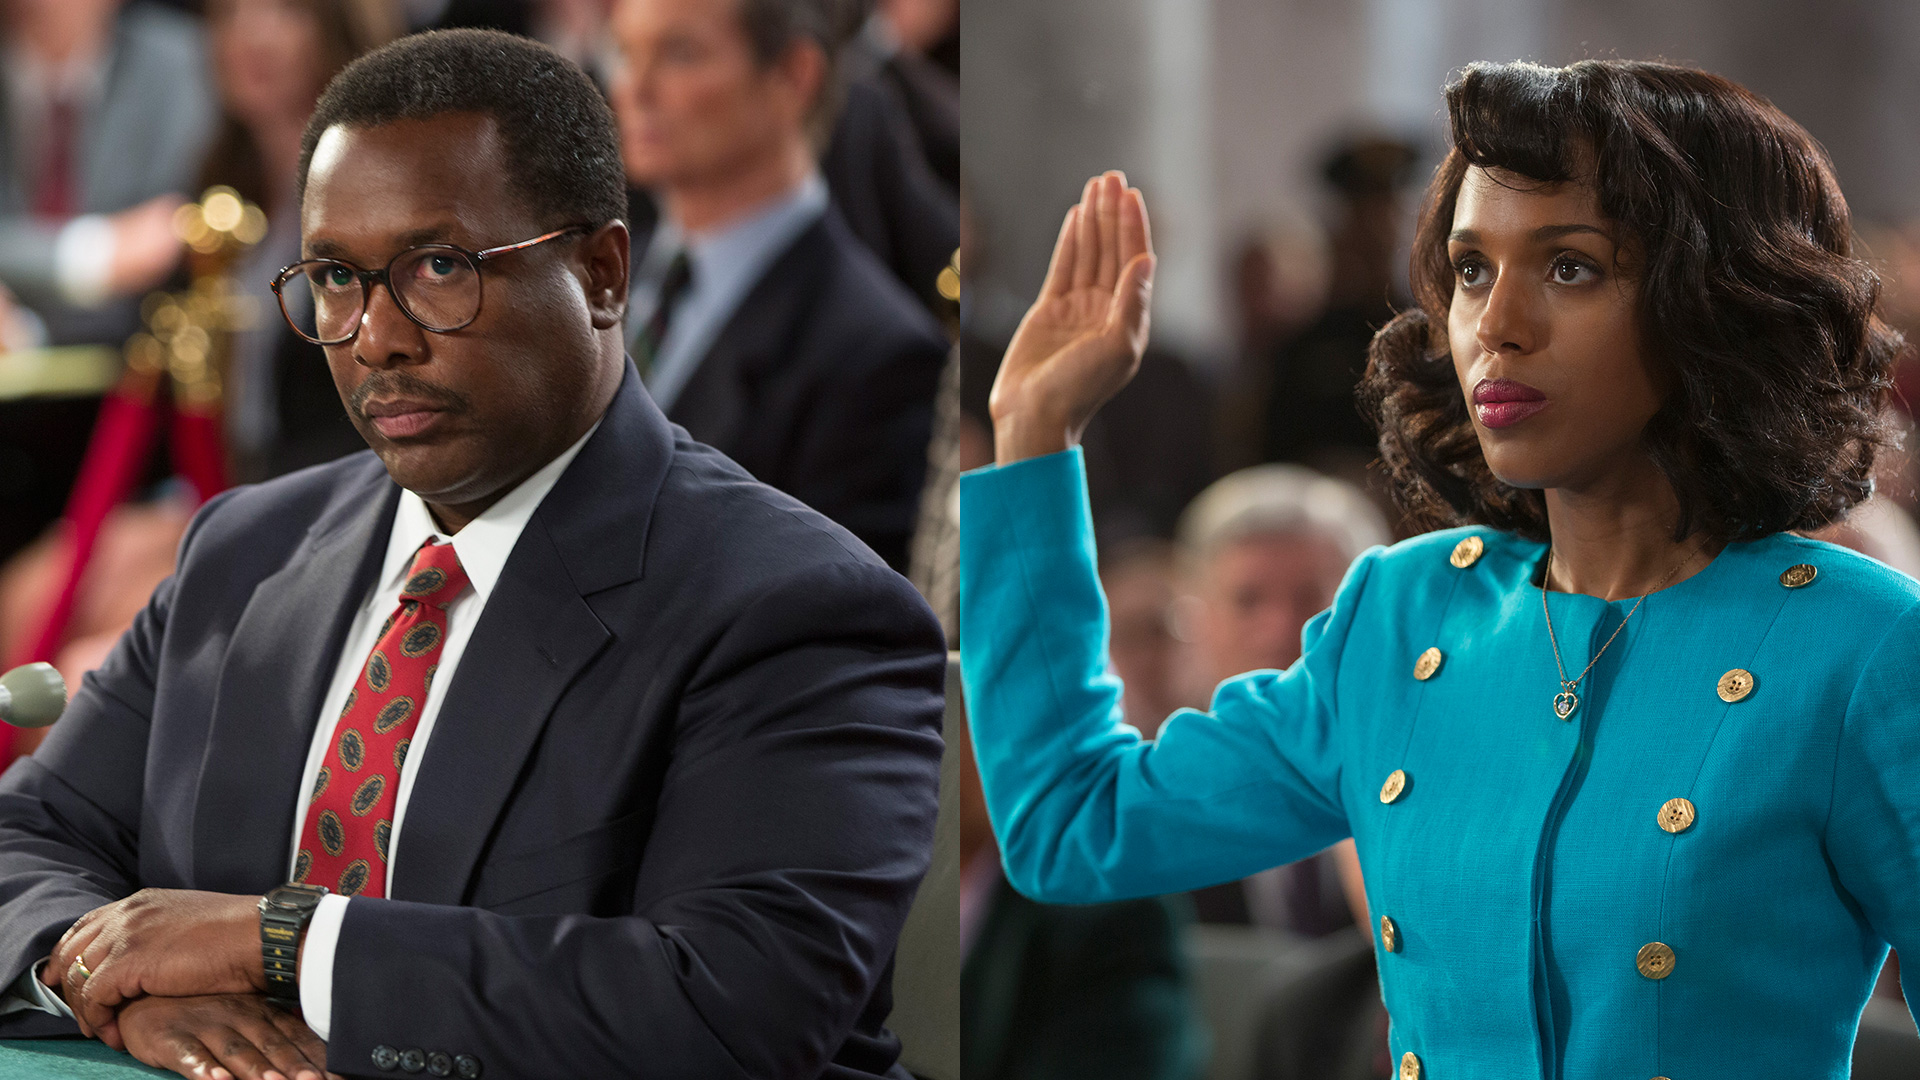 hbo confirmation wendell pierce and kerry washington